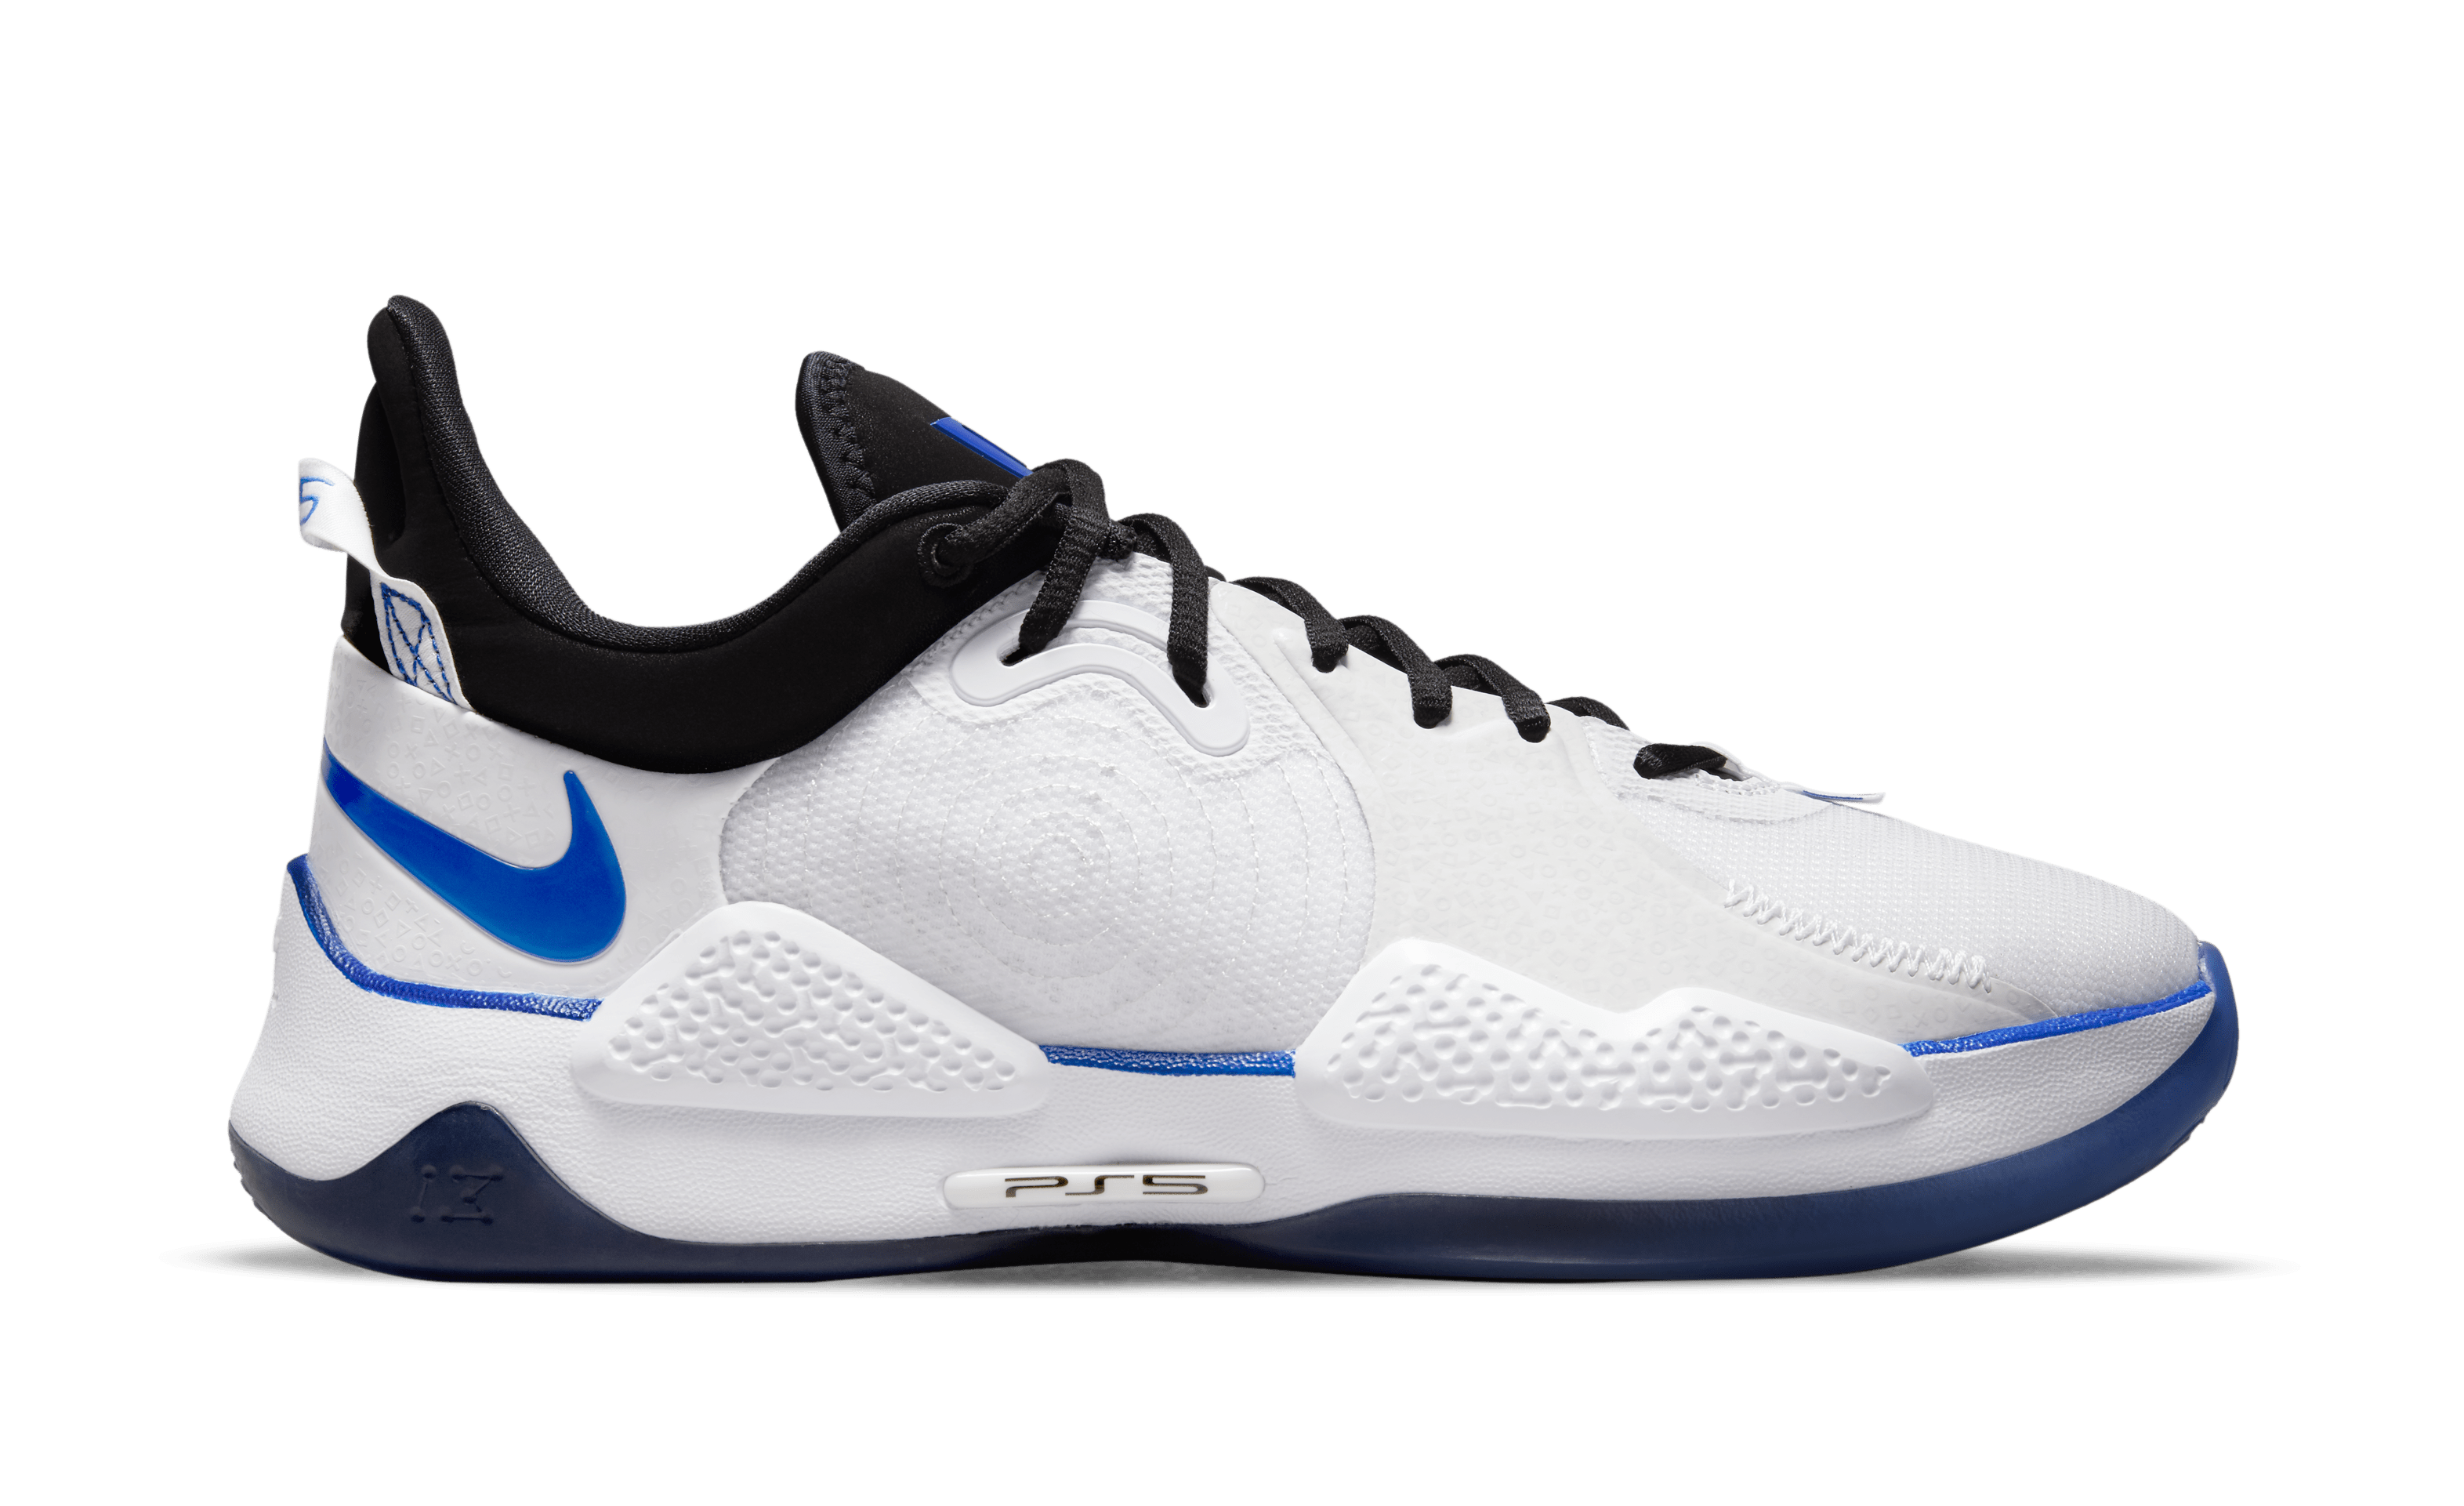 Playstation x Nike PG 5 'PS5' CW3144-100 (Medial)